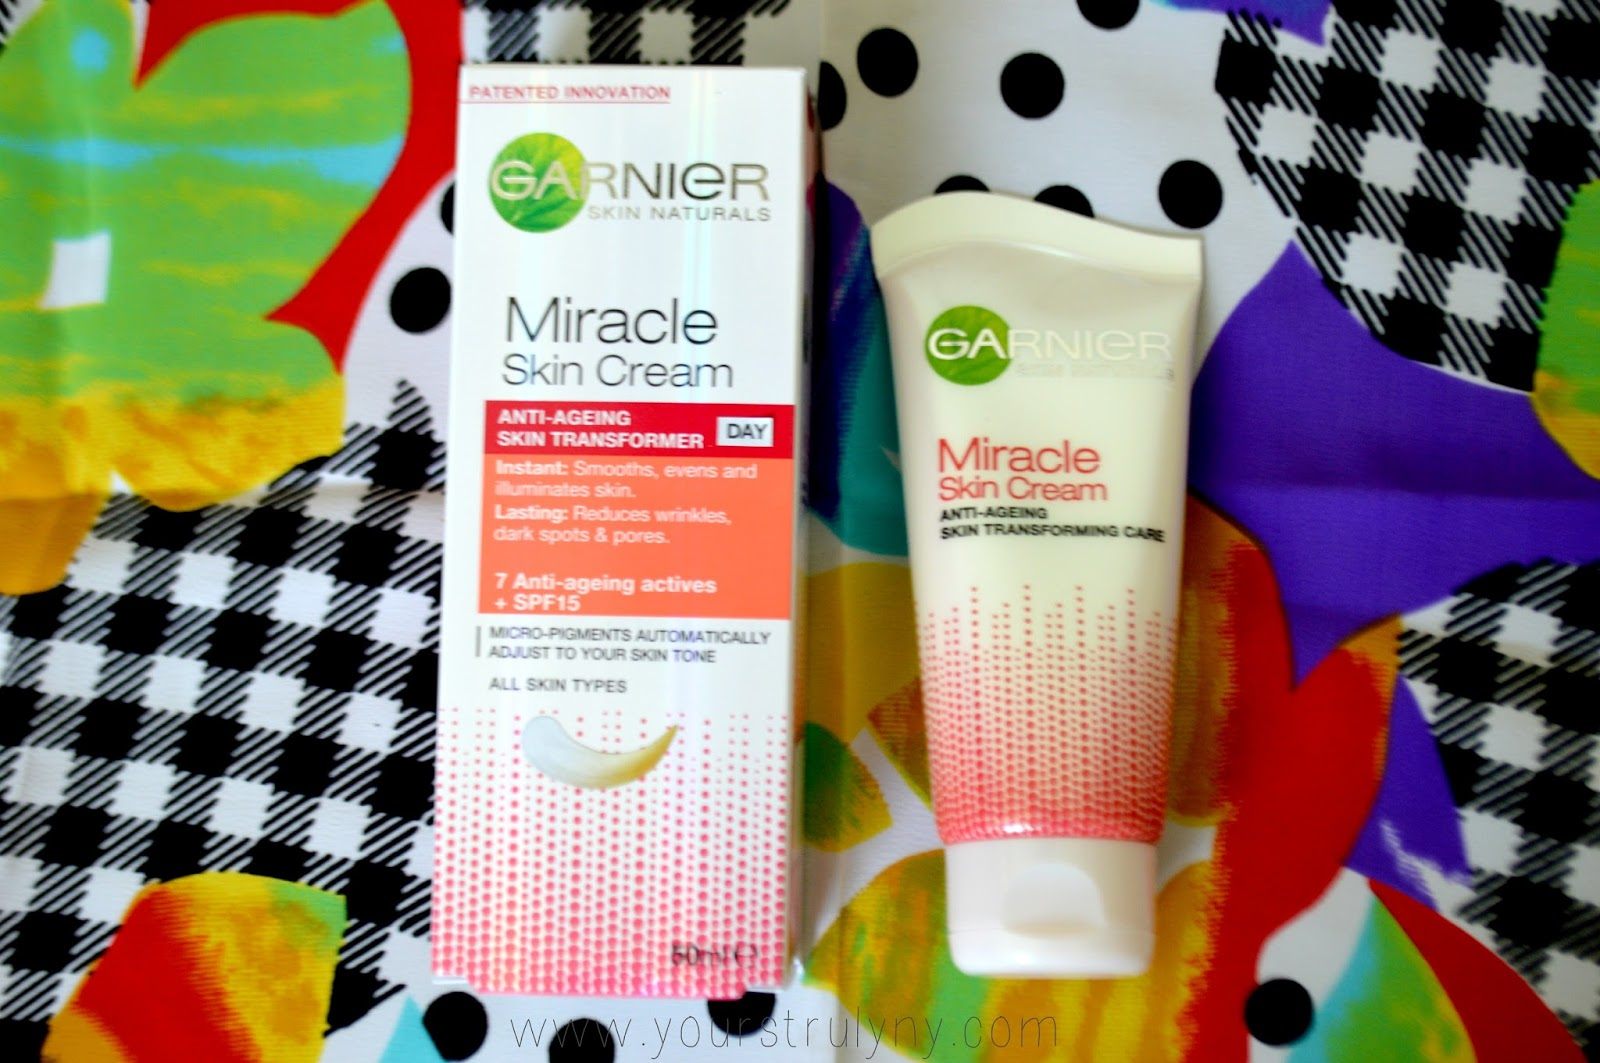 Garnier Skin Natural Miracle Skin Cream